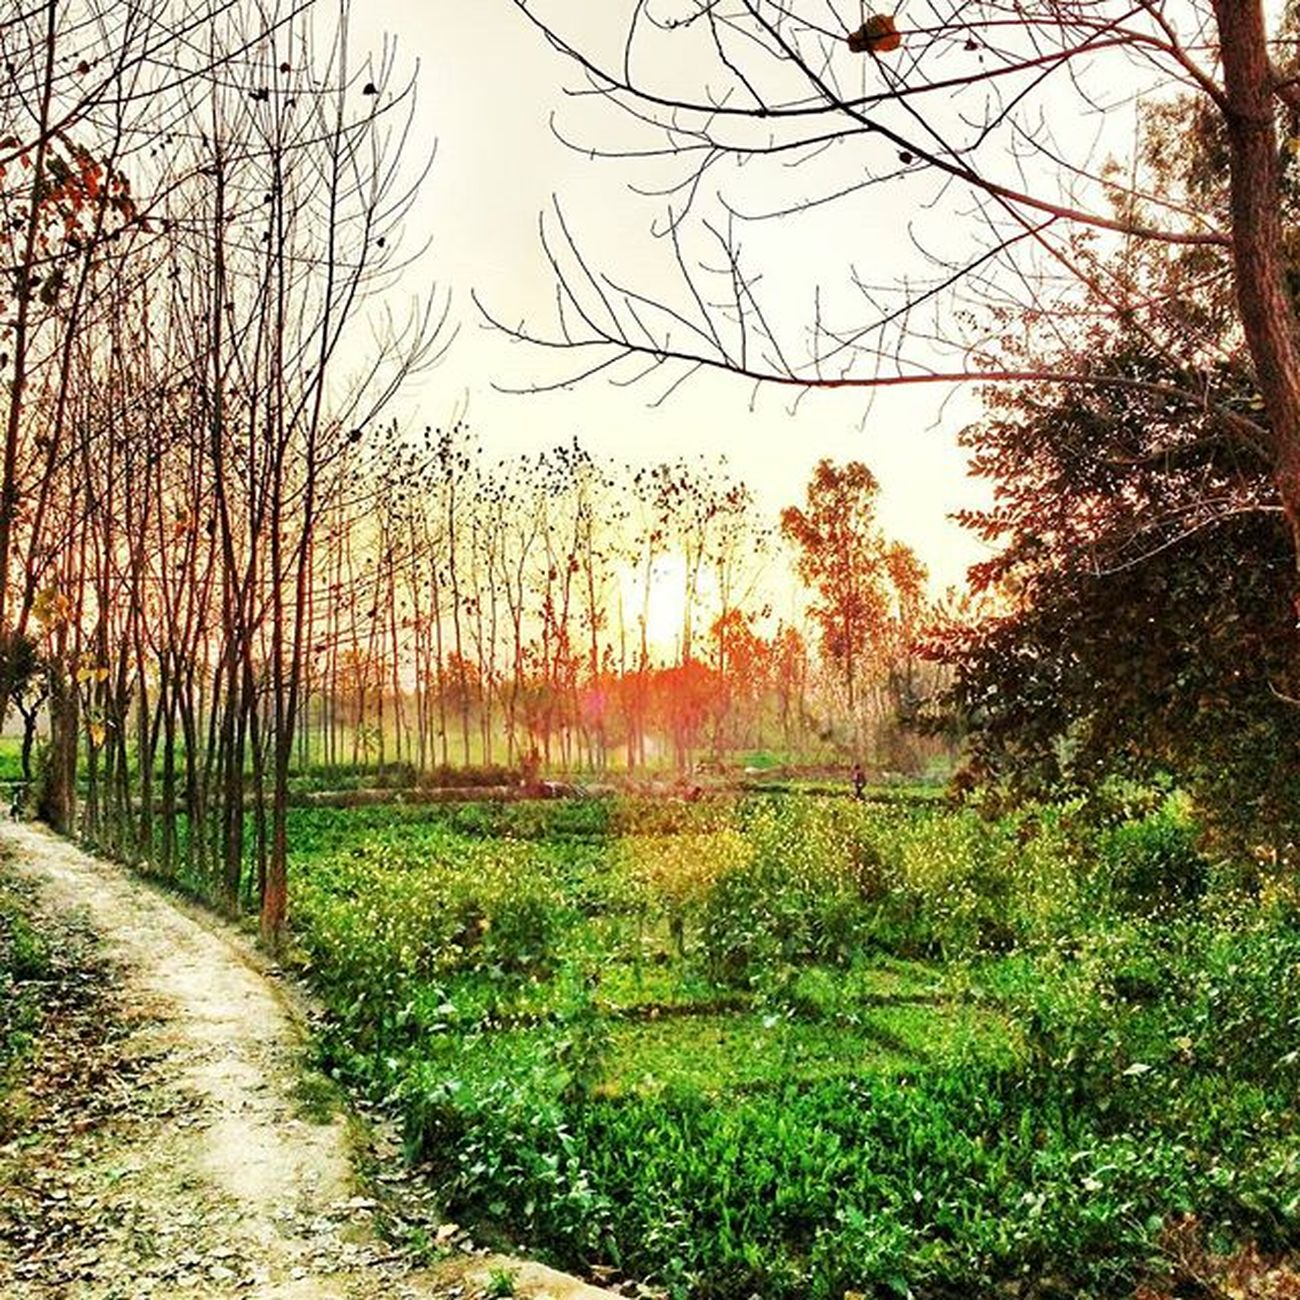 Dream_street Sunset Long_way Location- Shahjahanpur Greats_by_me Photoddicted 😜